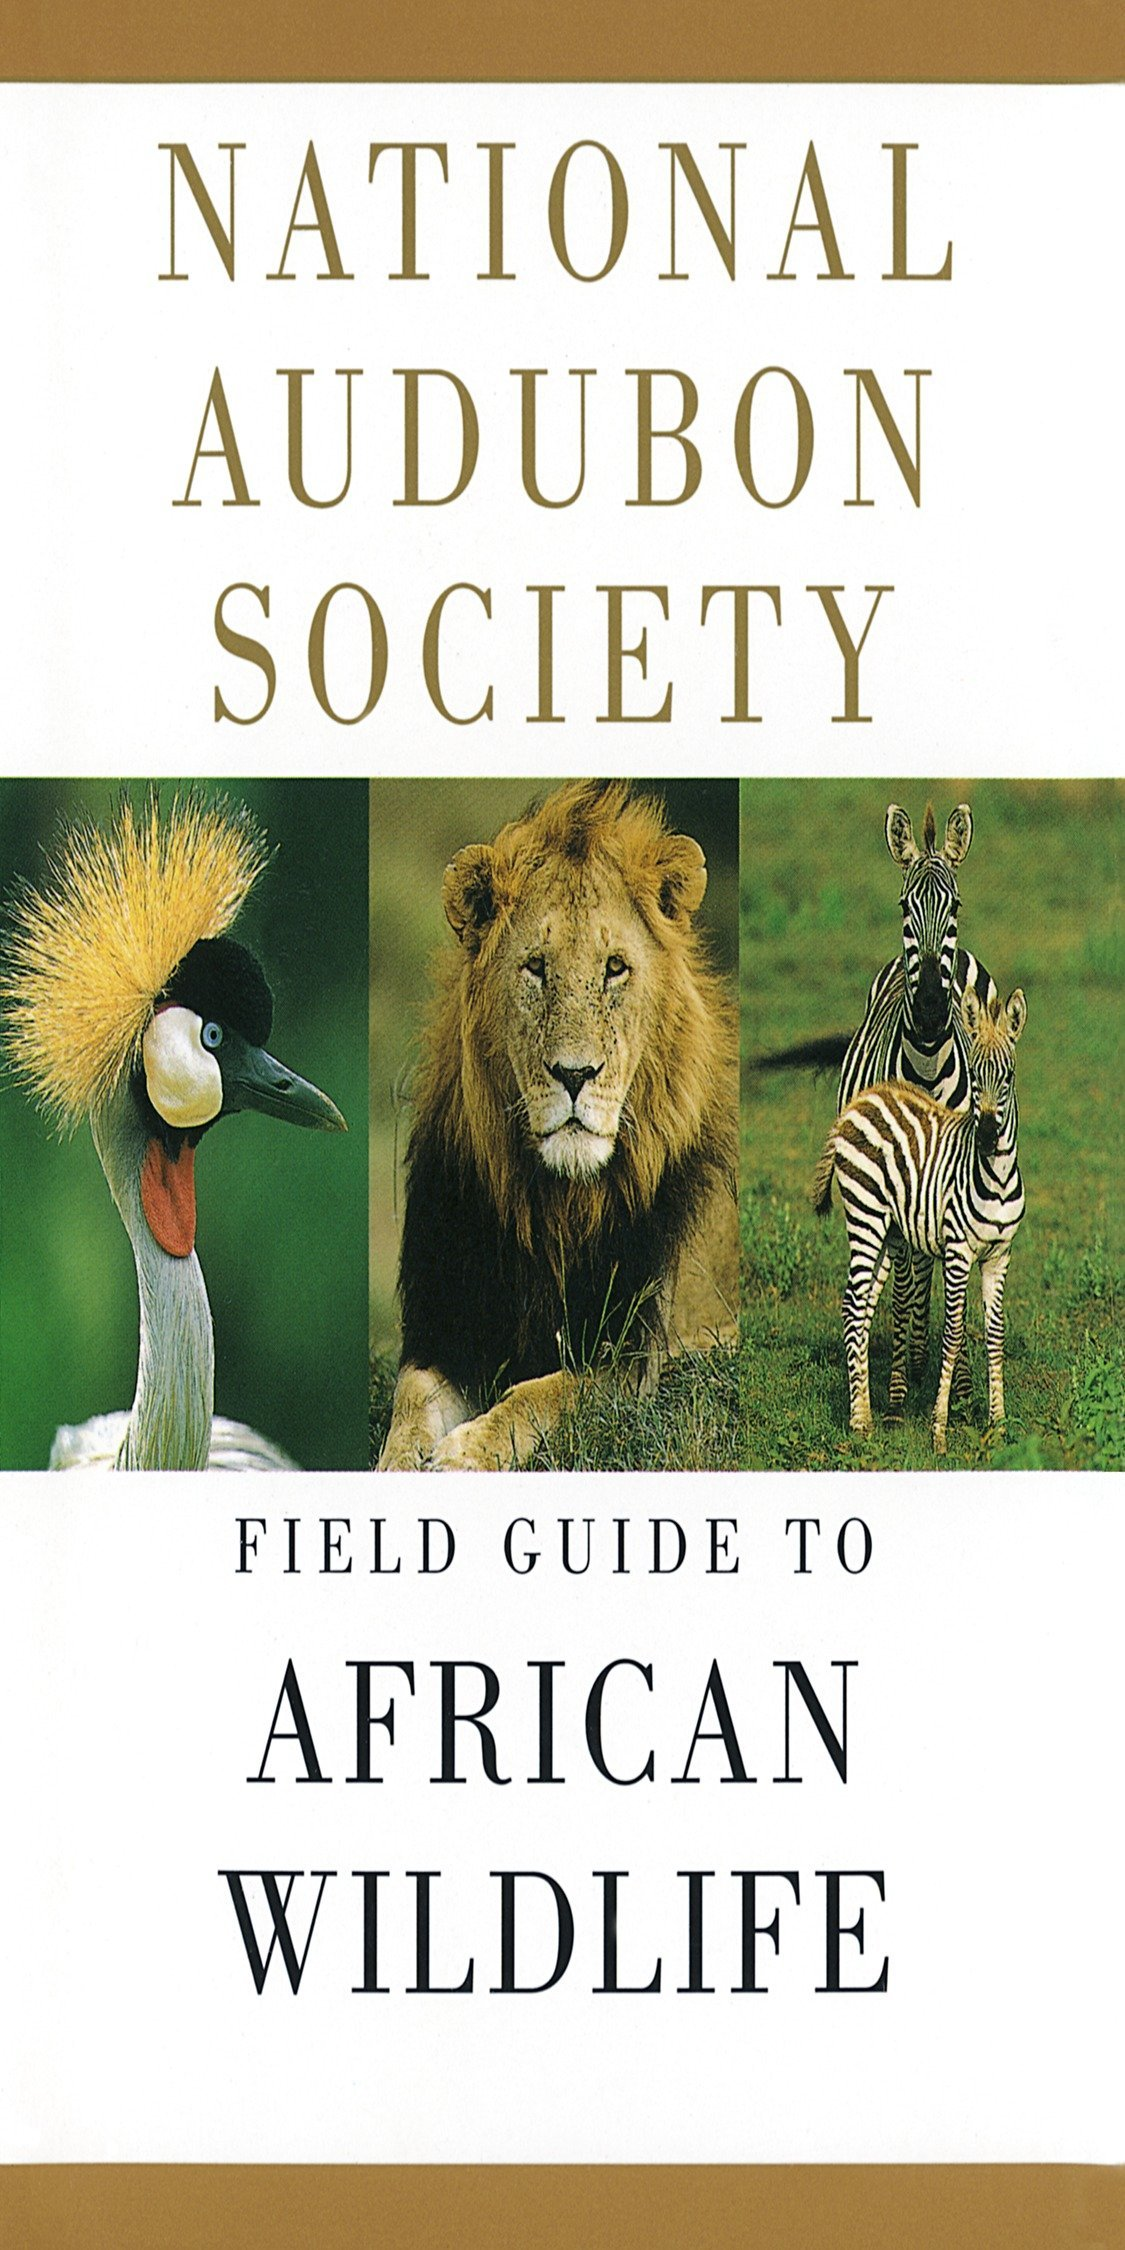 Image OfNational Audubon Society Field Guide To African Wildlife (National Audubon Society Field Guides)